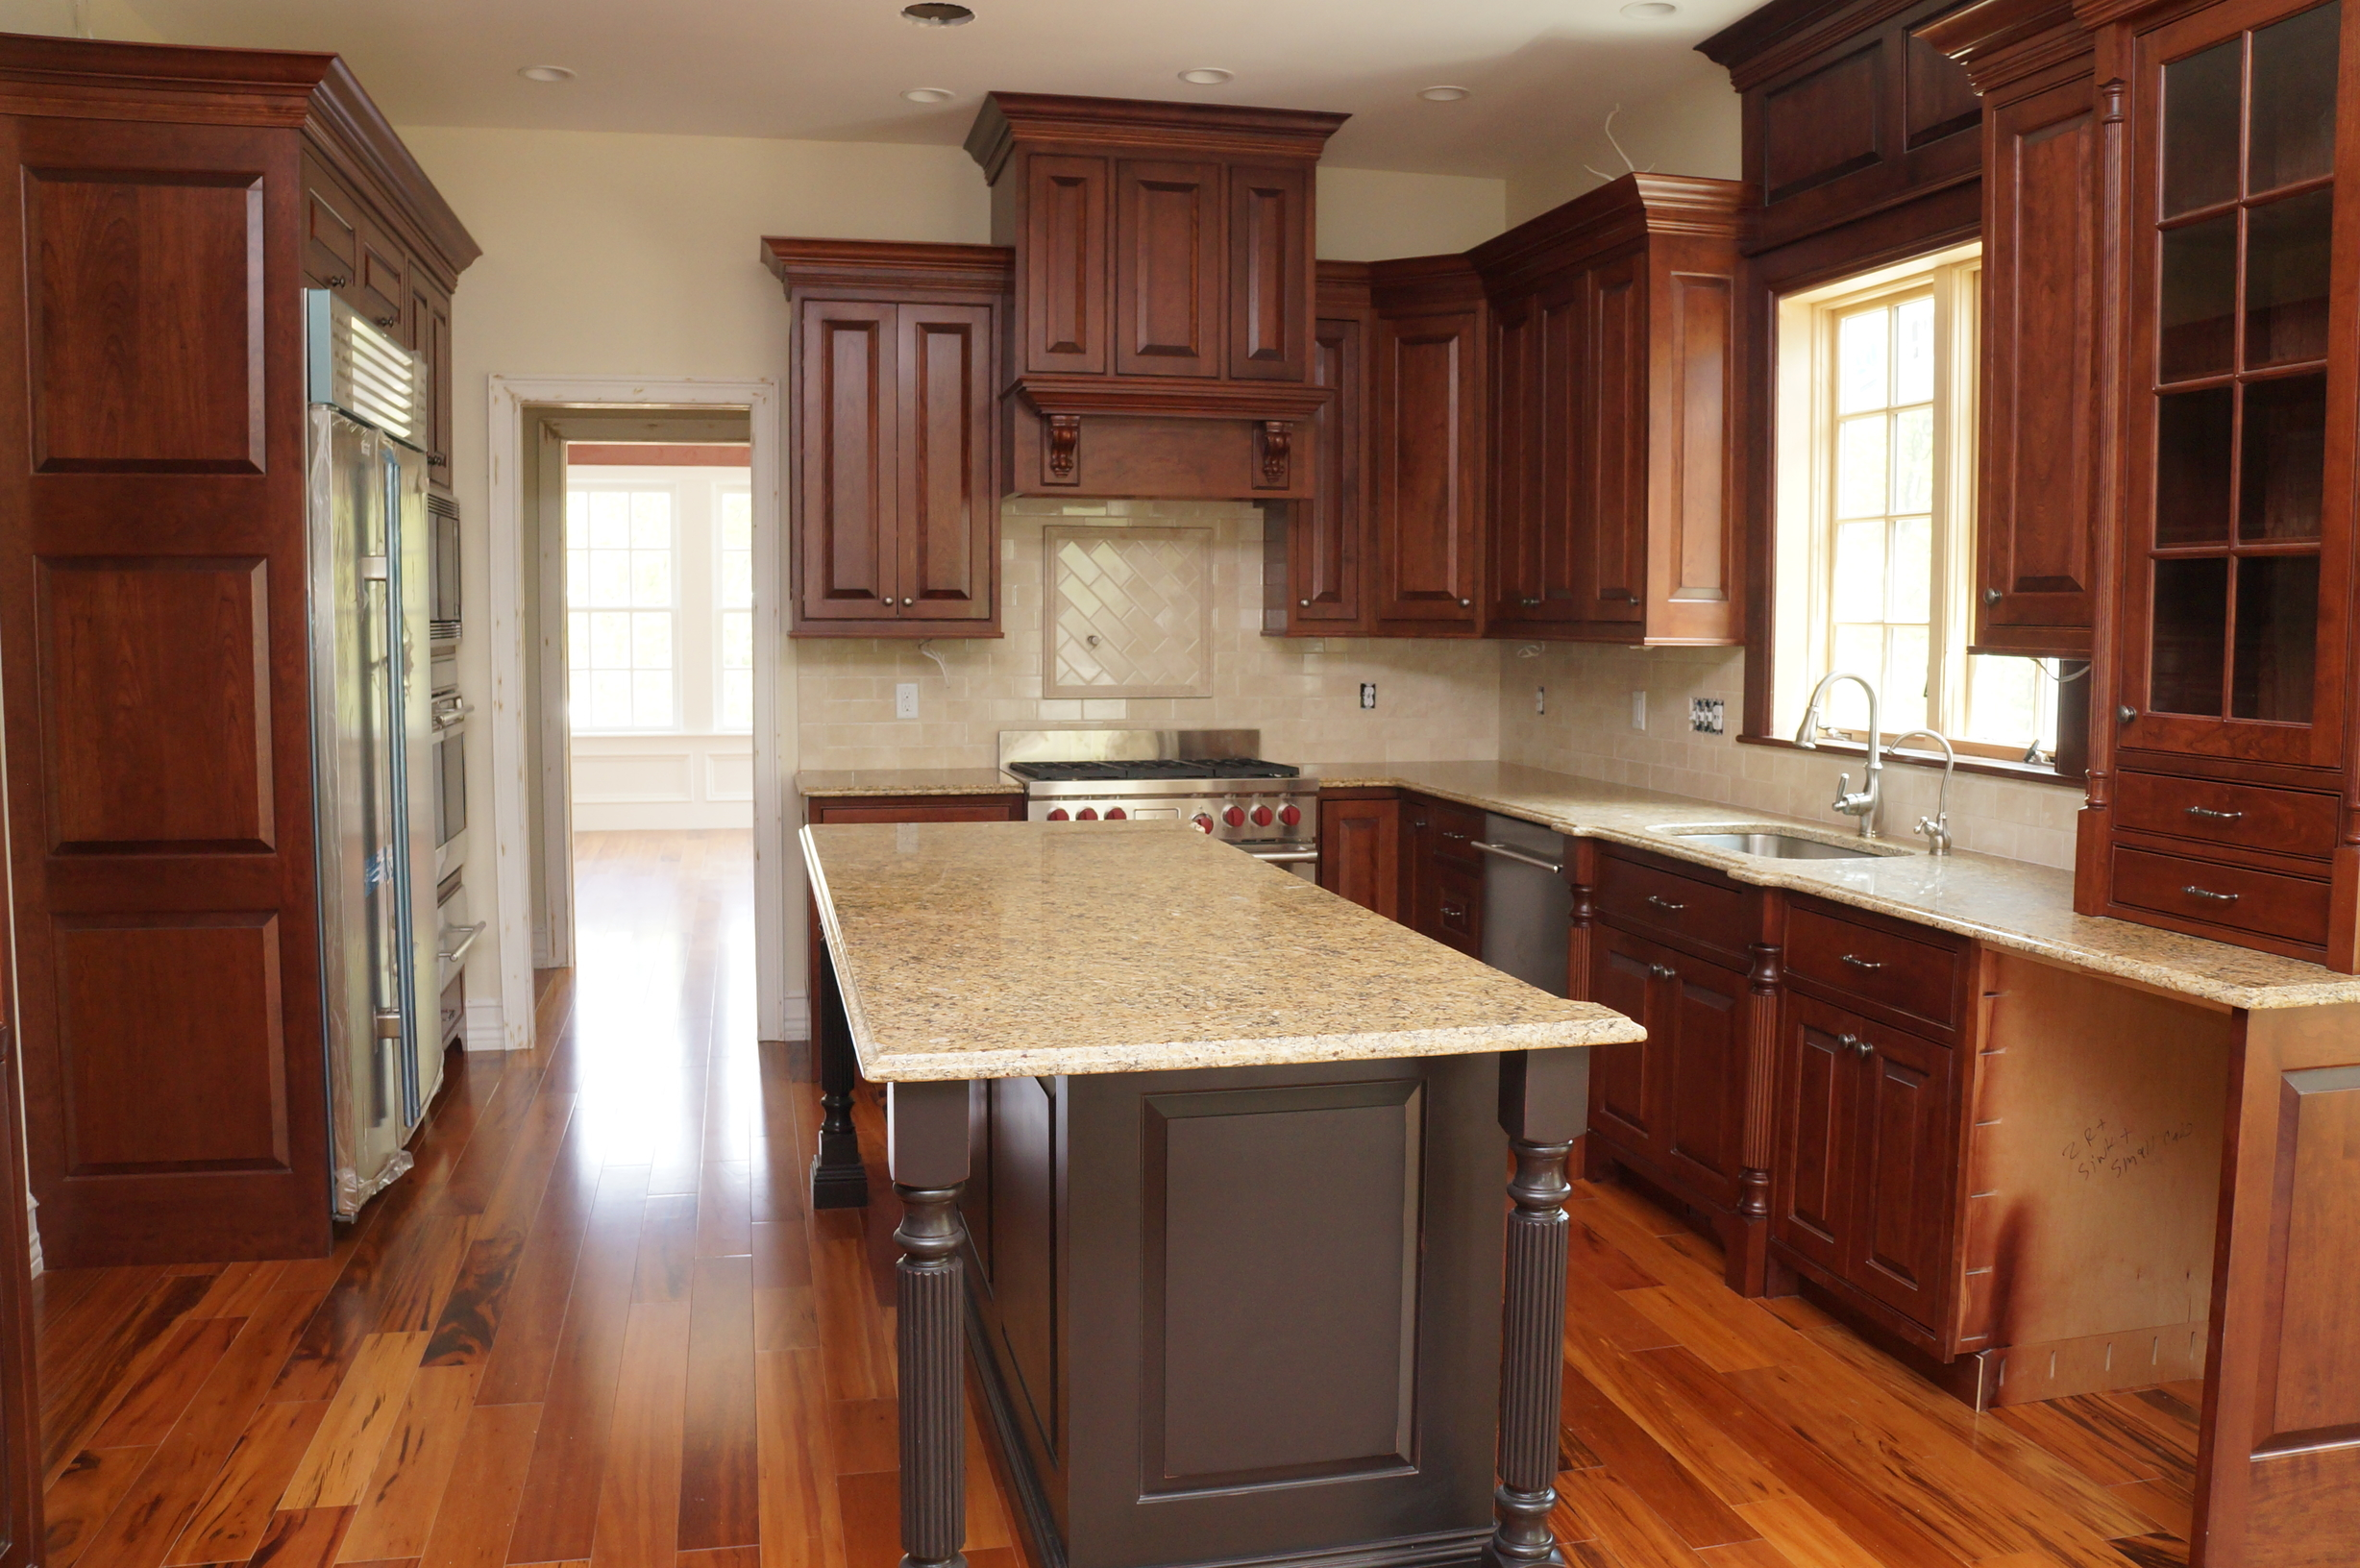 Build a Country Kitchen Westford MA